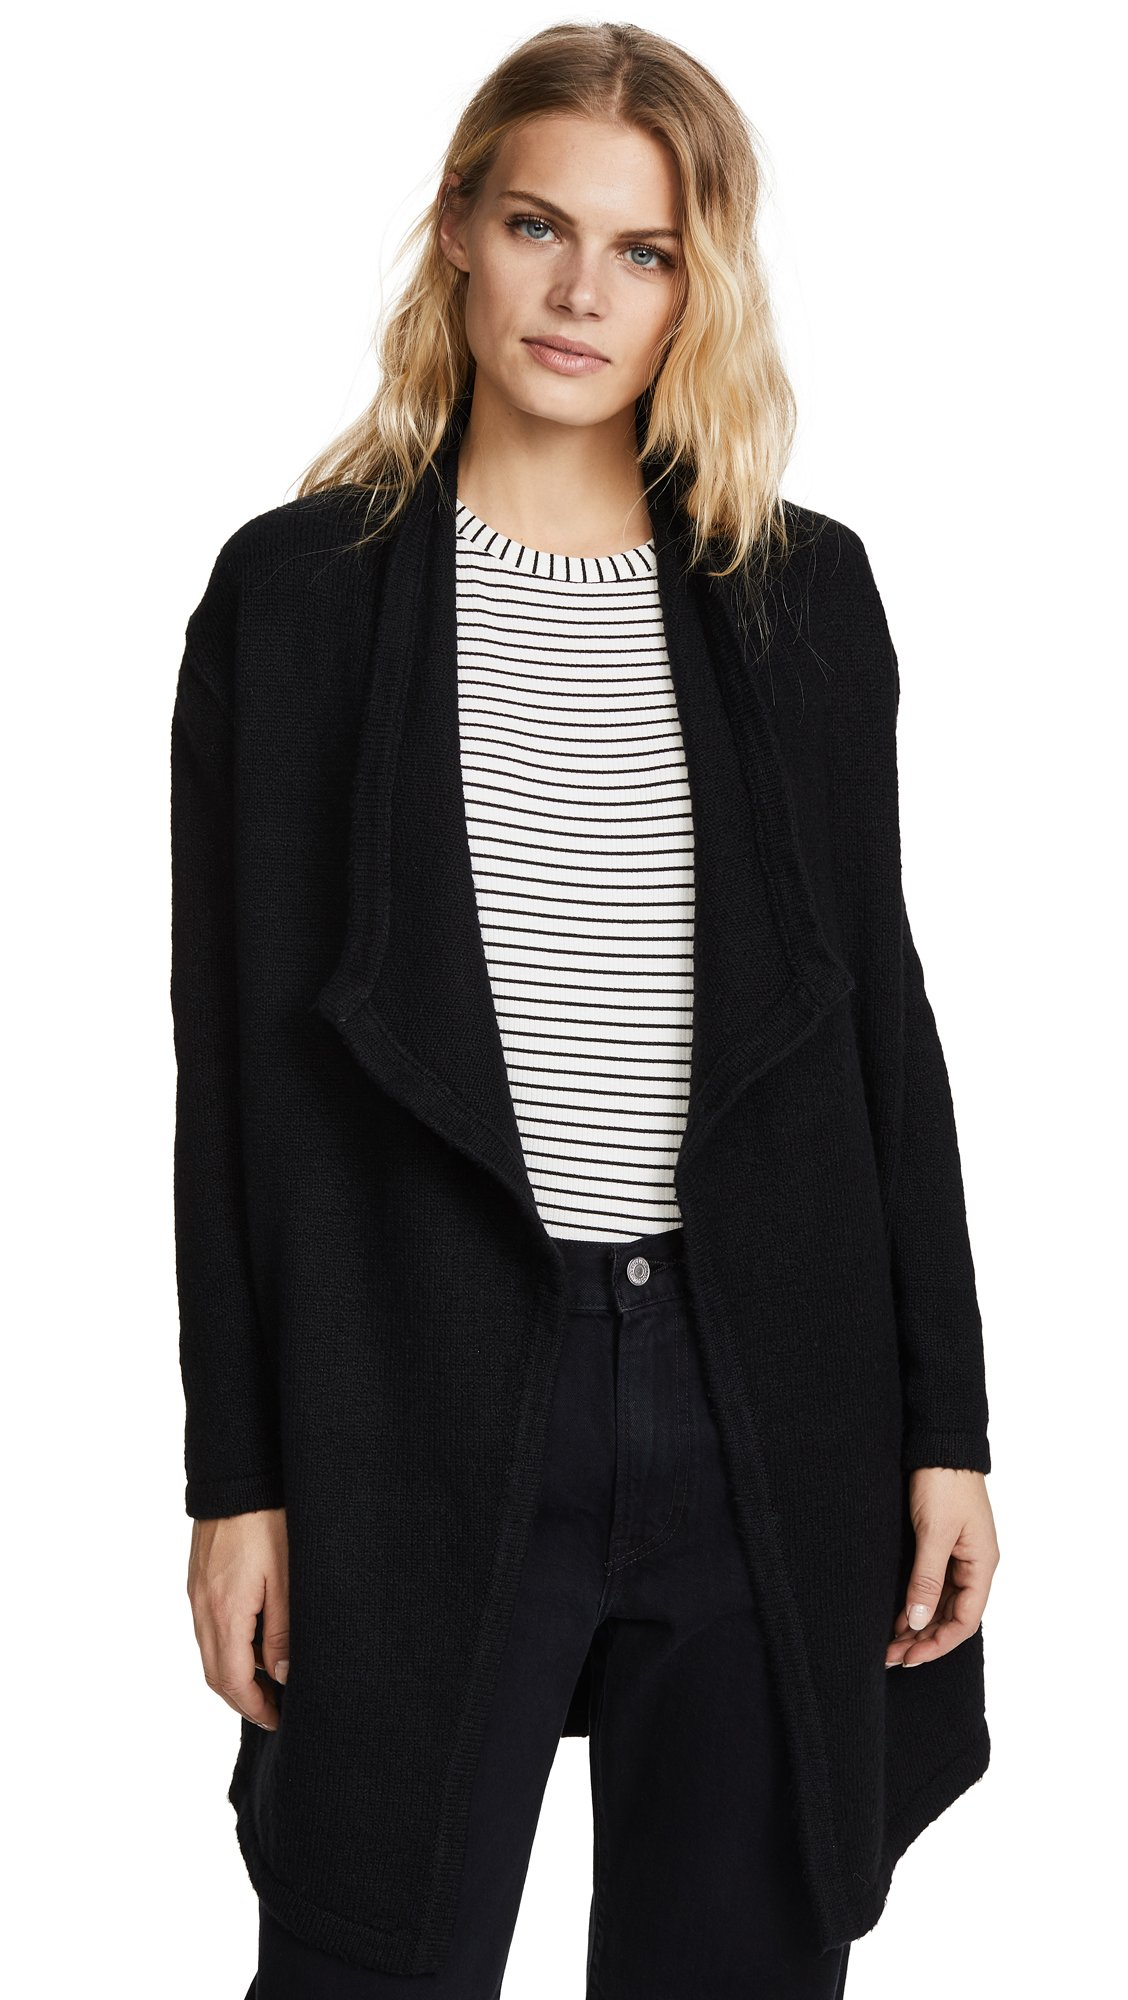 cupcakes and cashmere Women's Sahar Drape Front Cardigan, Black, X-Small